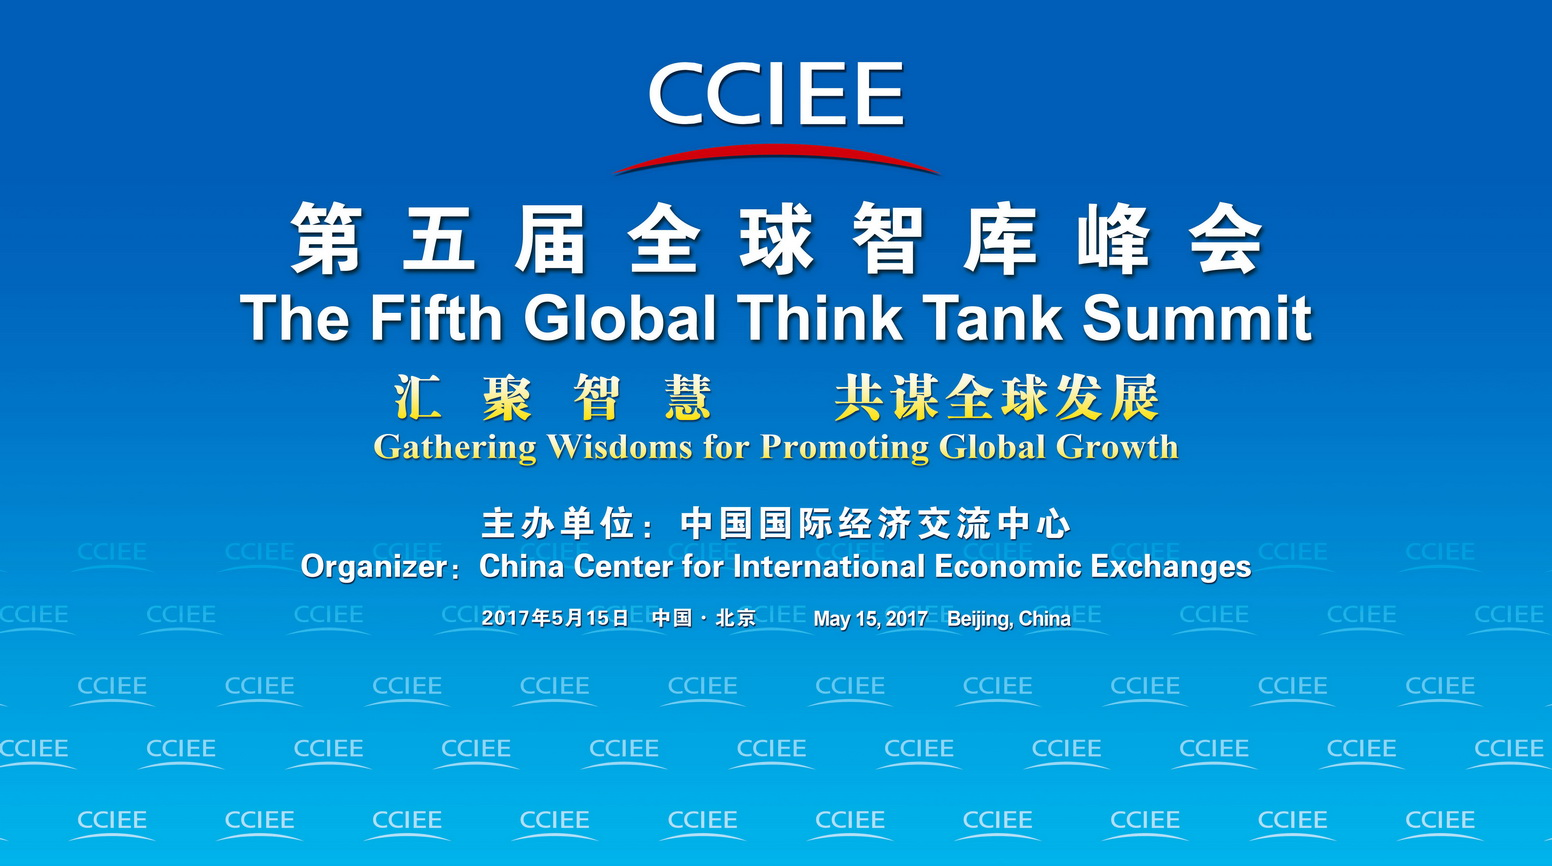 The Fifth Global Think Tank Summit Agenda